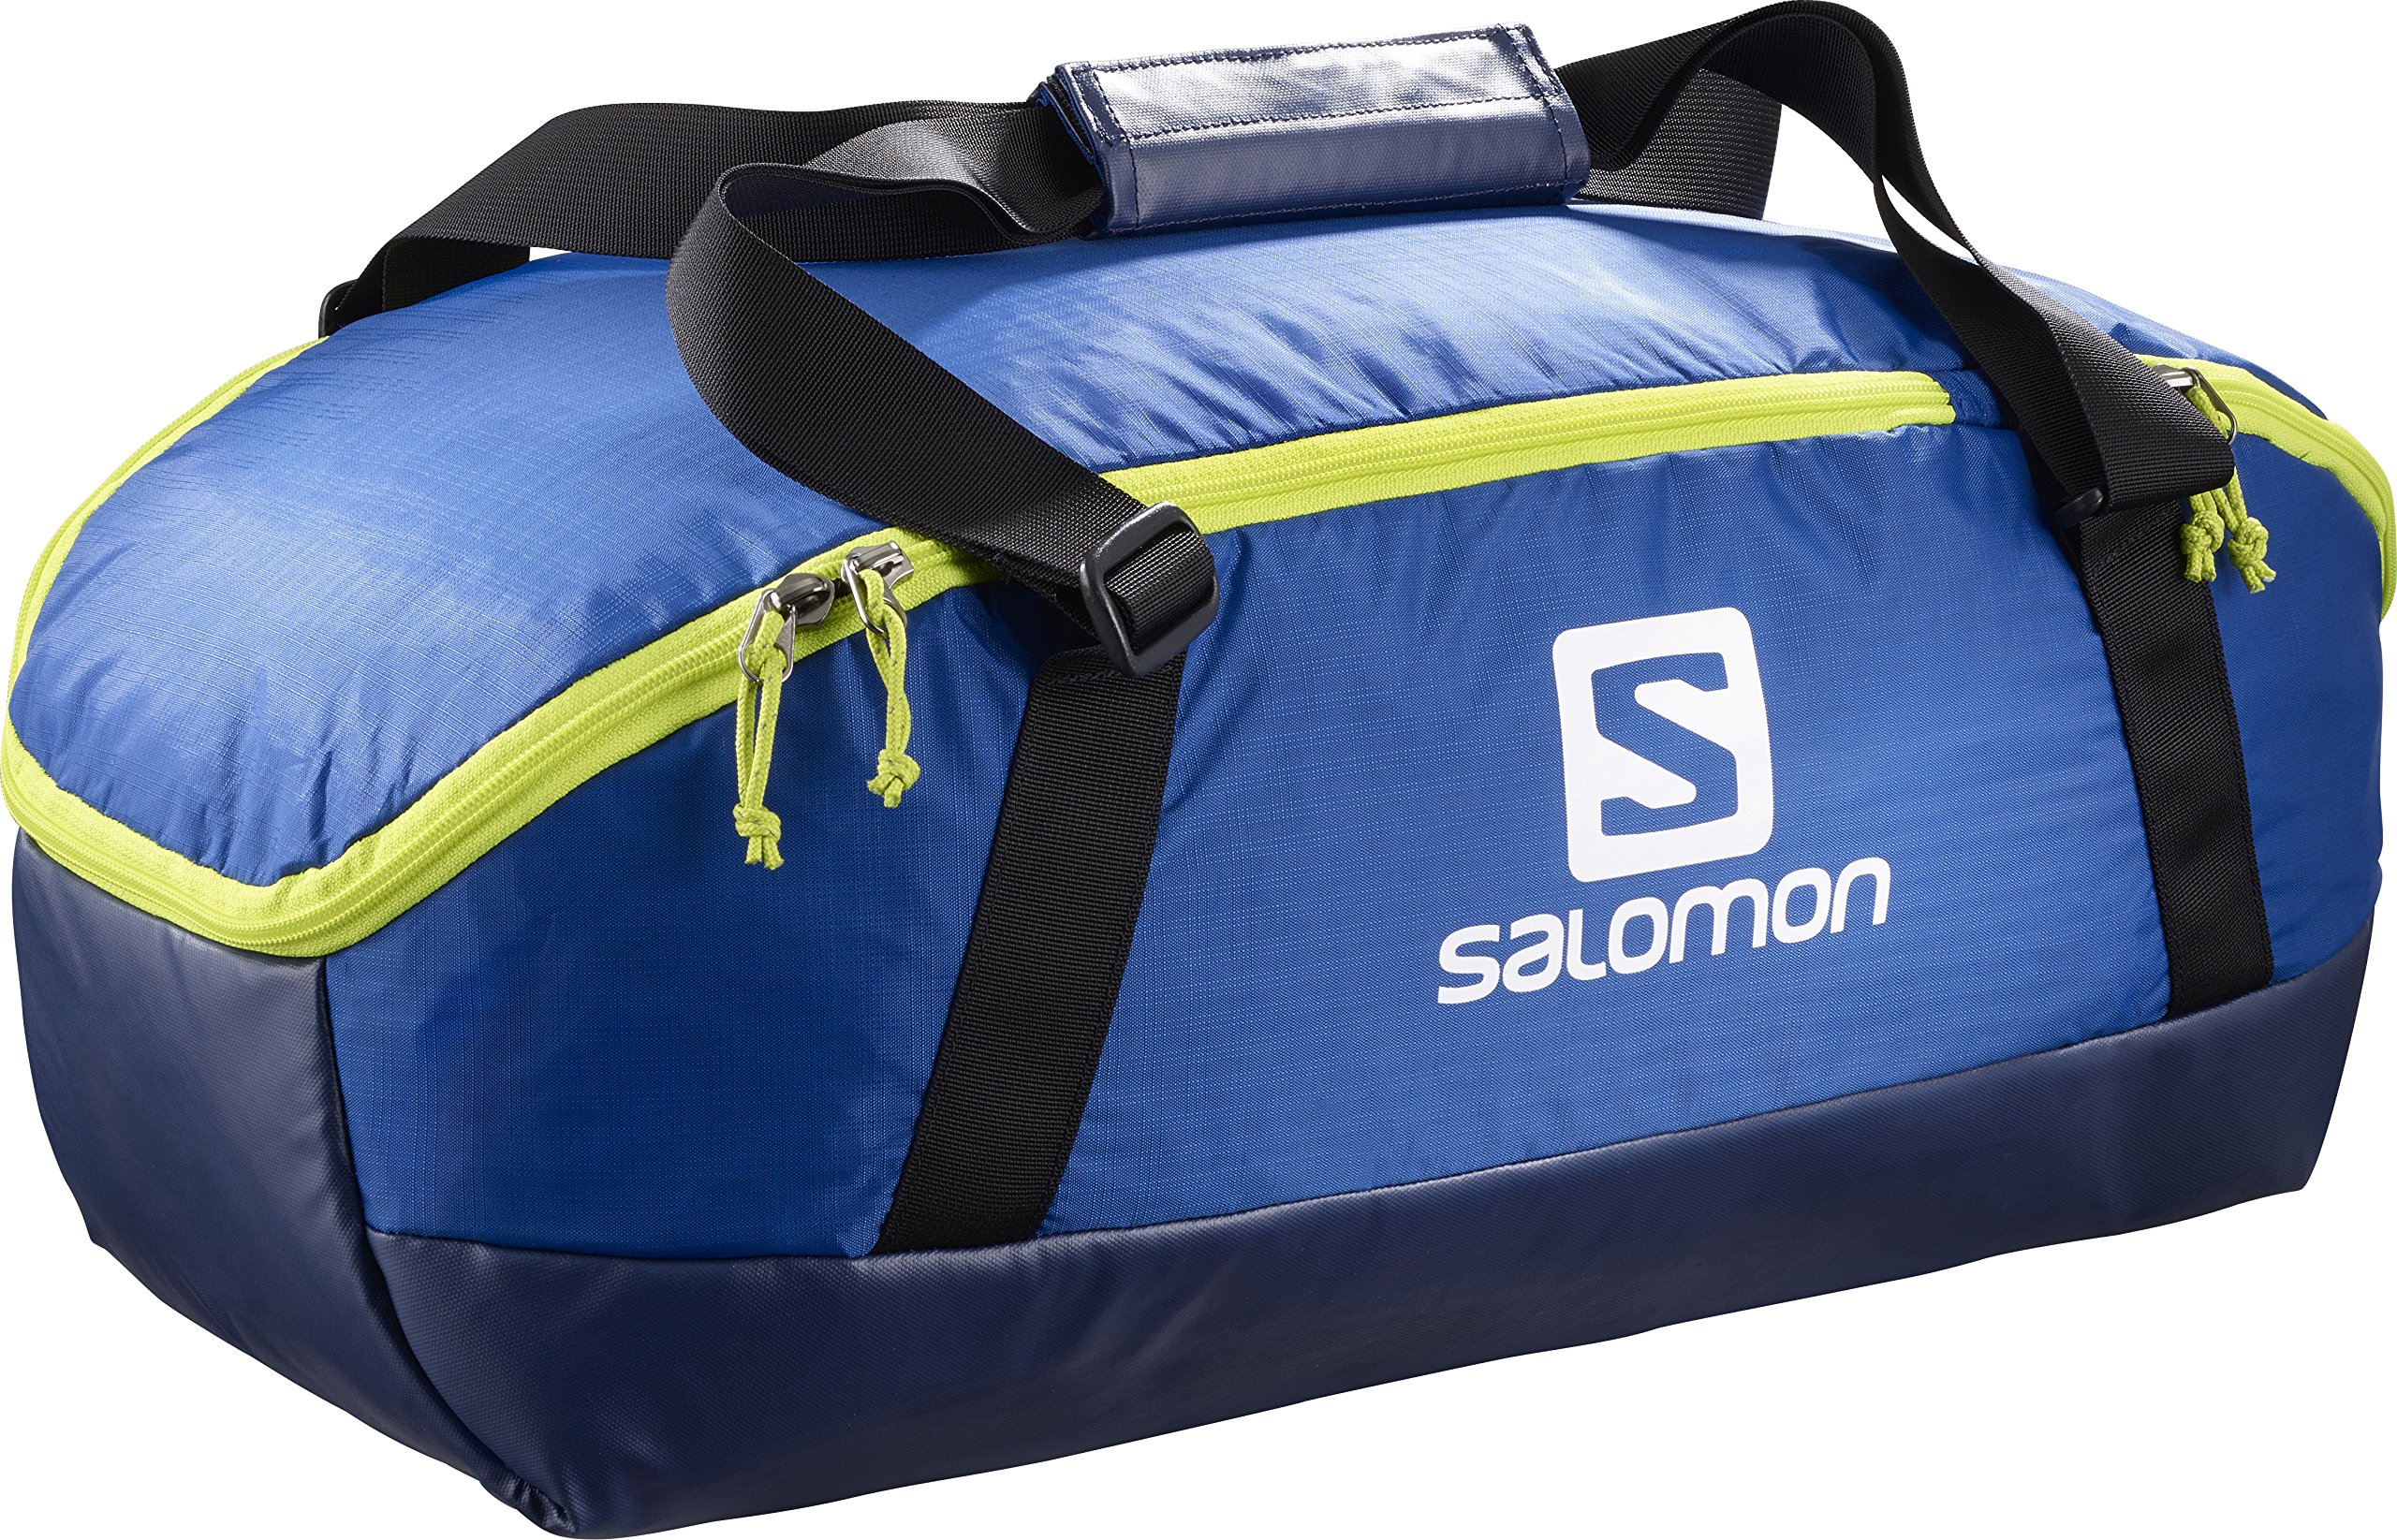 0f60e83b54 Amazon.co.jp: SALOMON: アウトドア バッグ